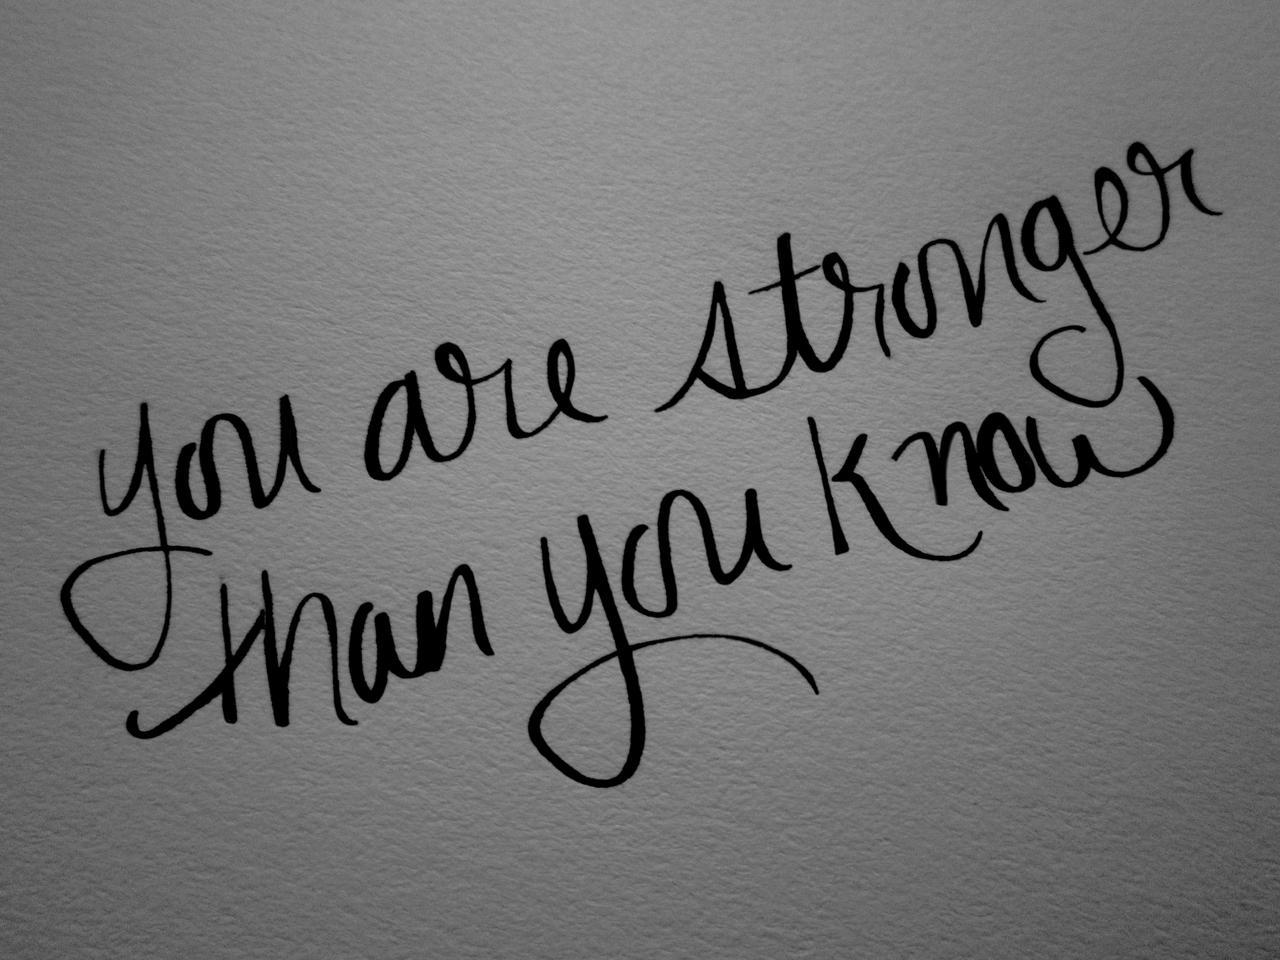 Keep strong girls!